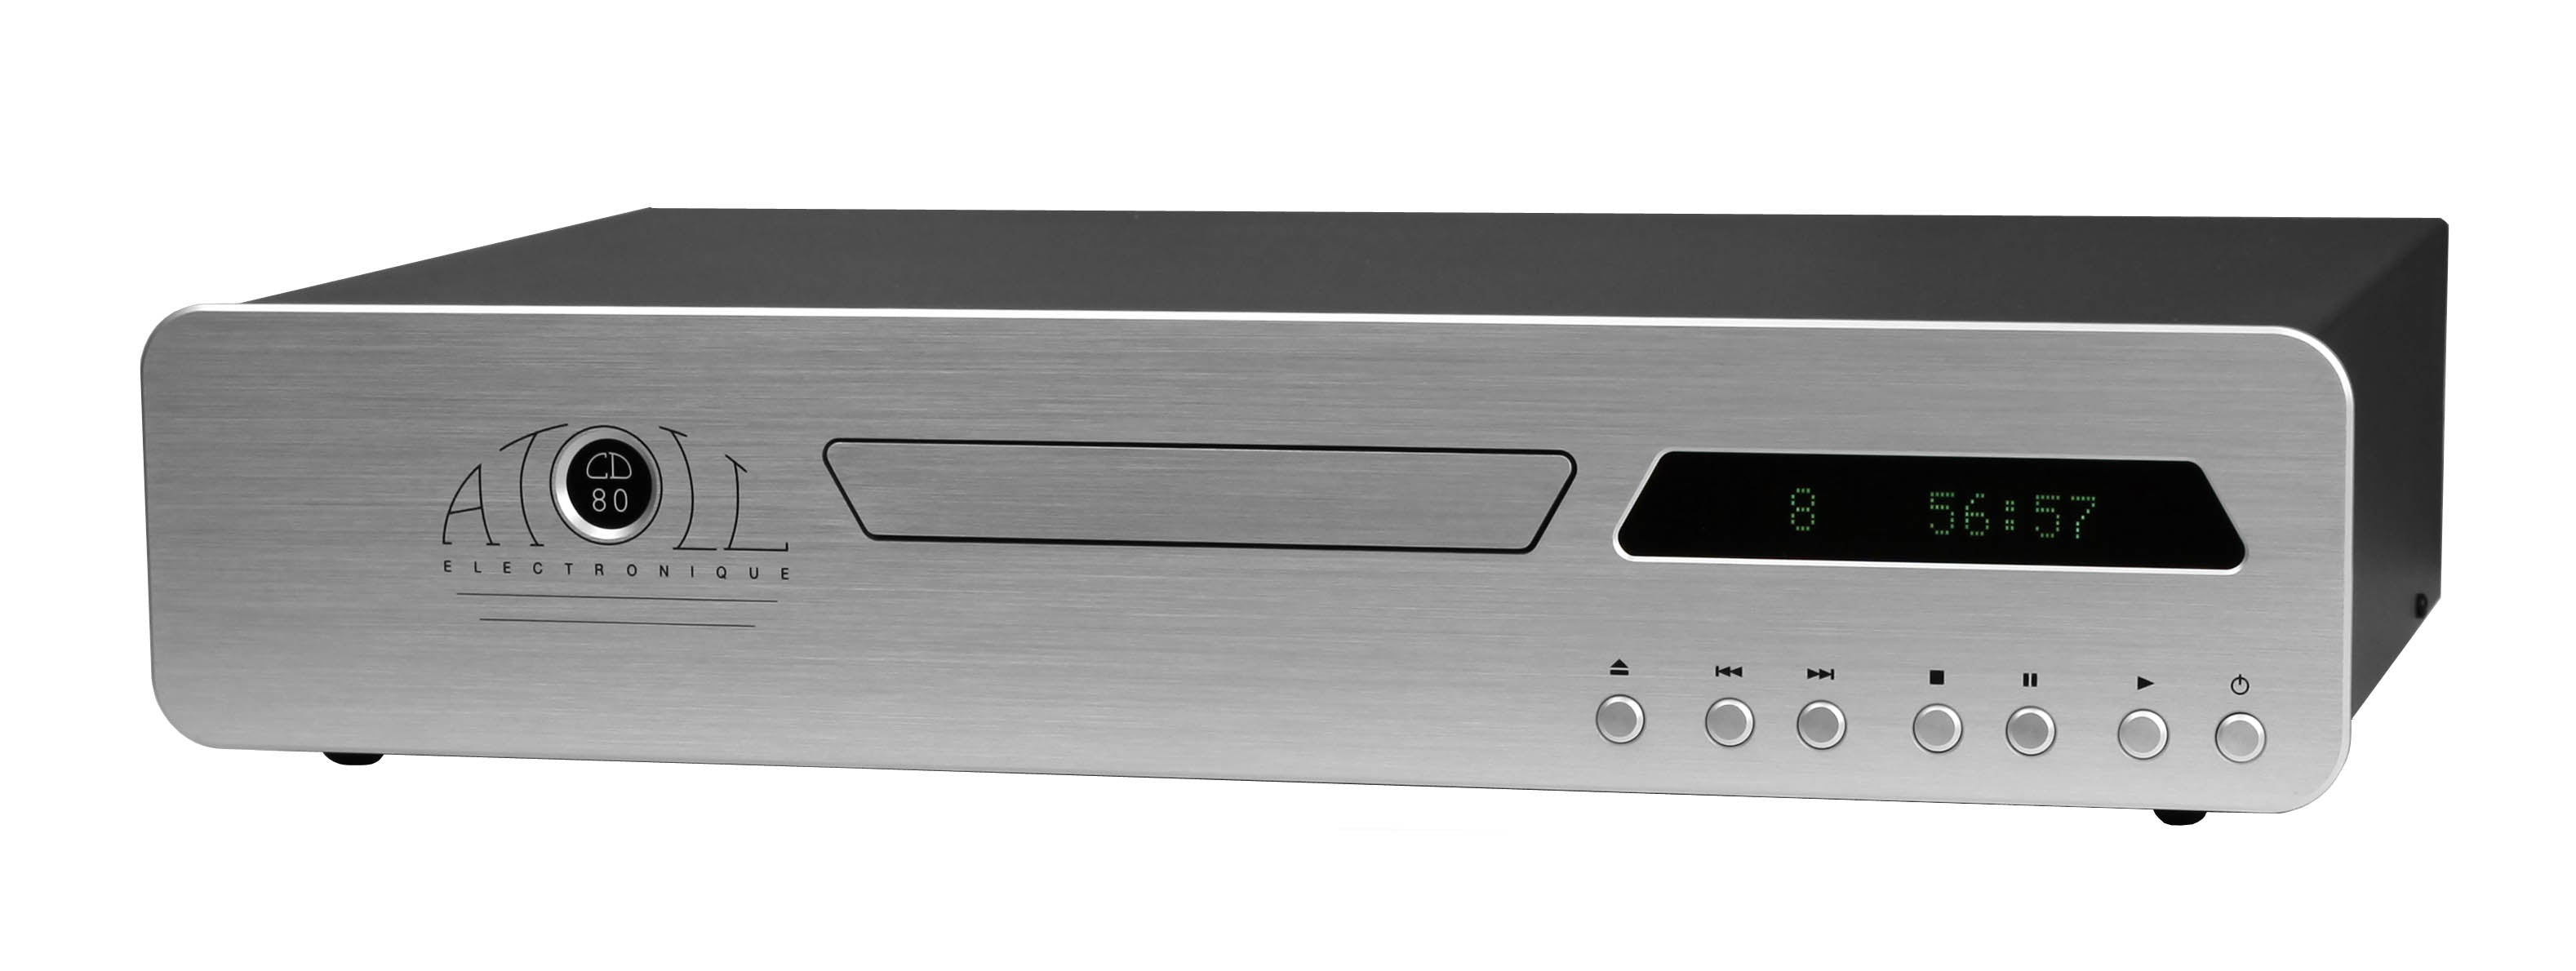 CD80SE2 CD Player